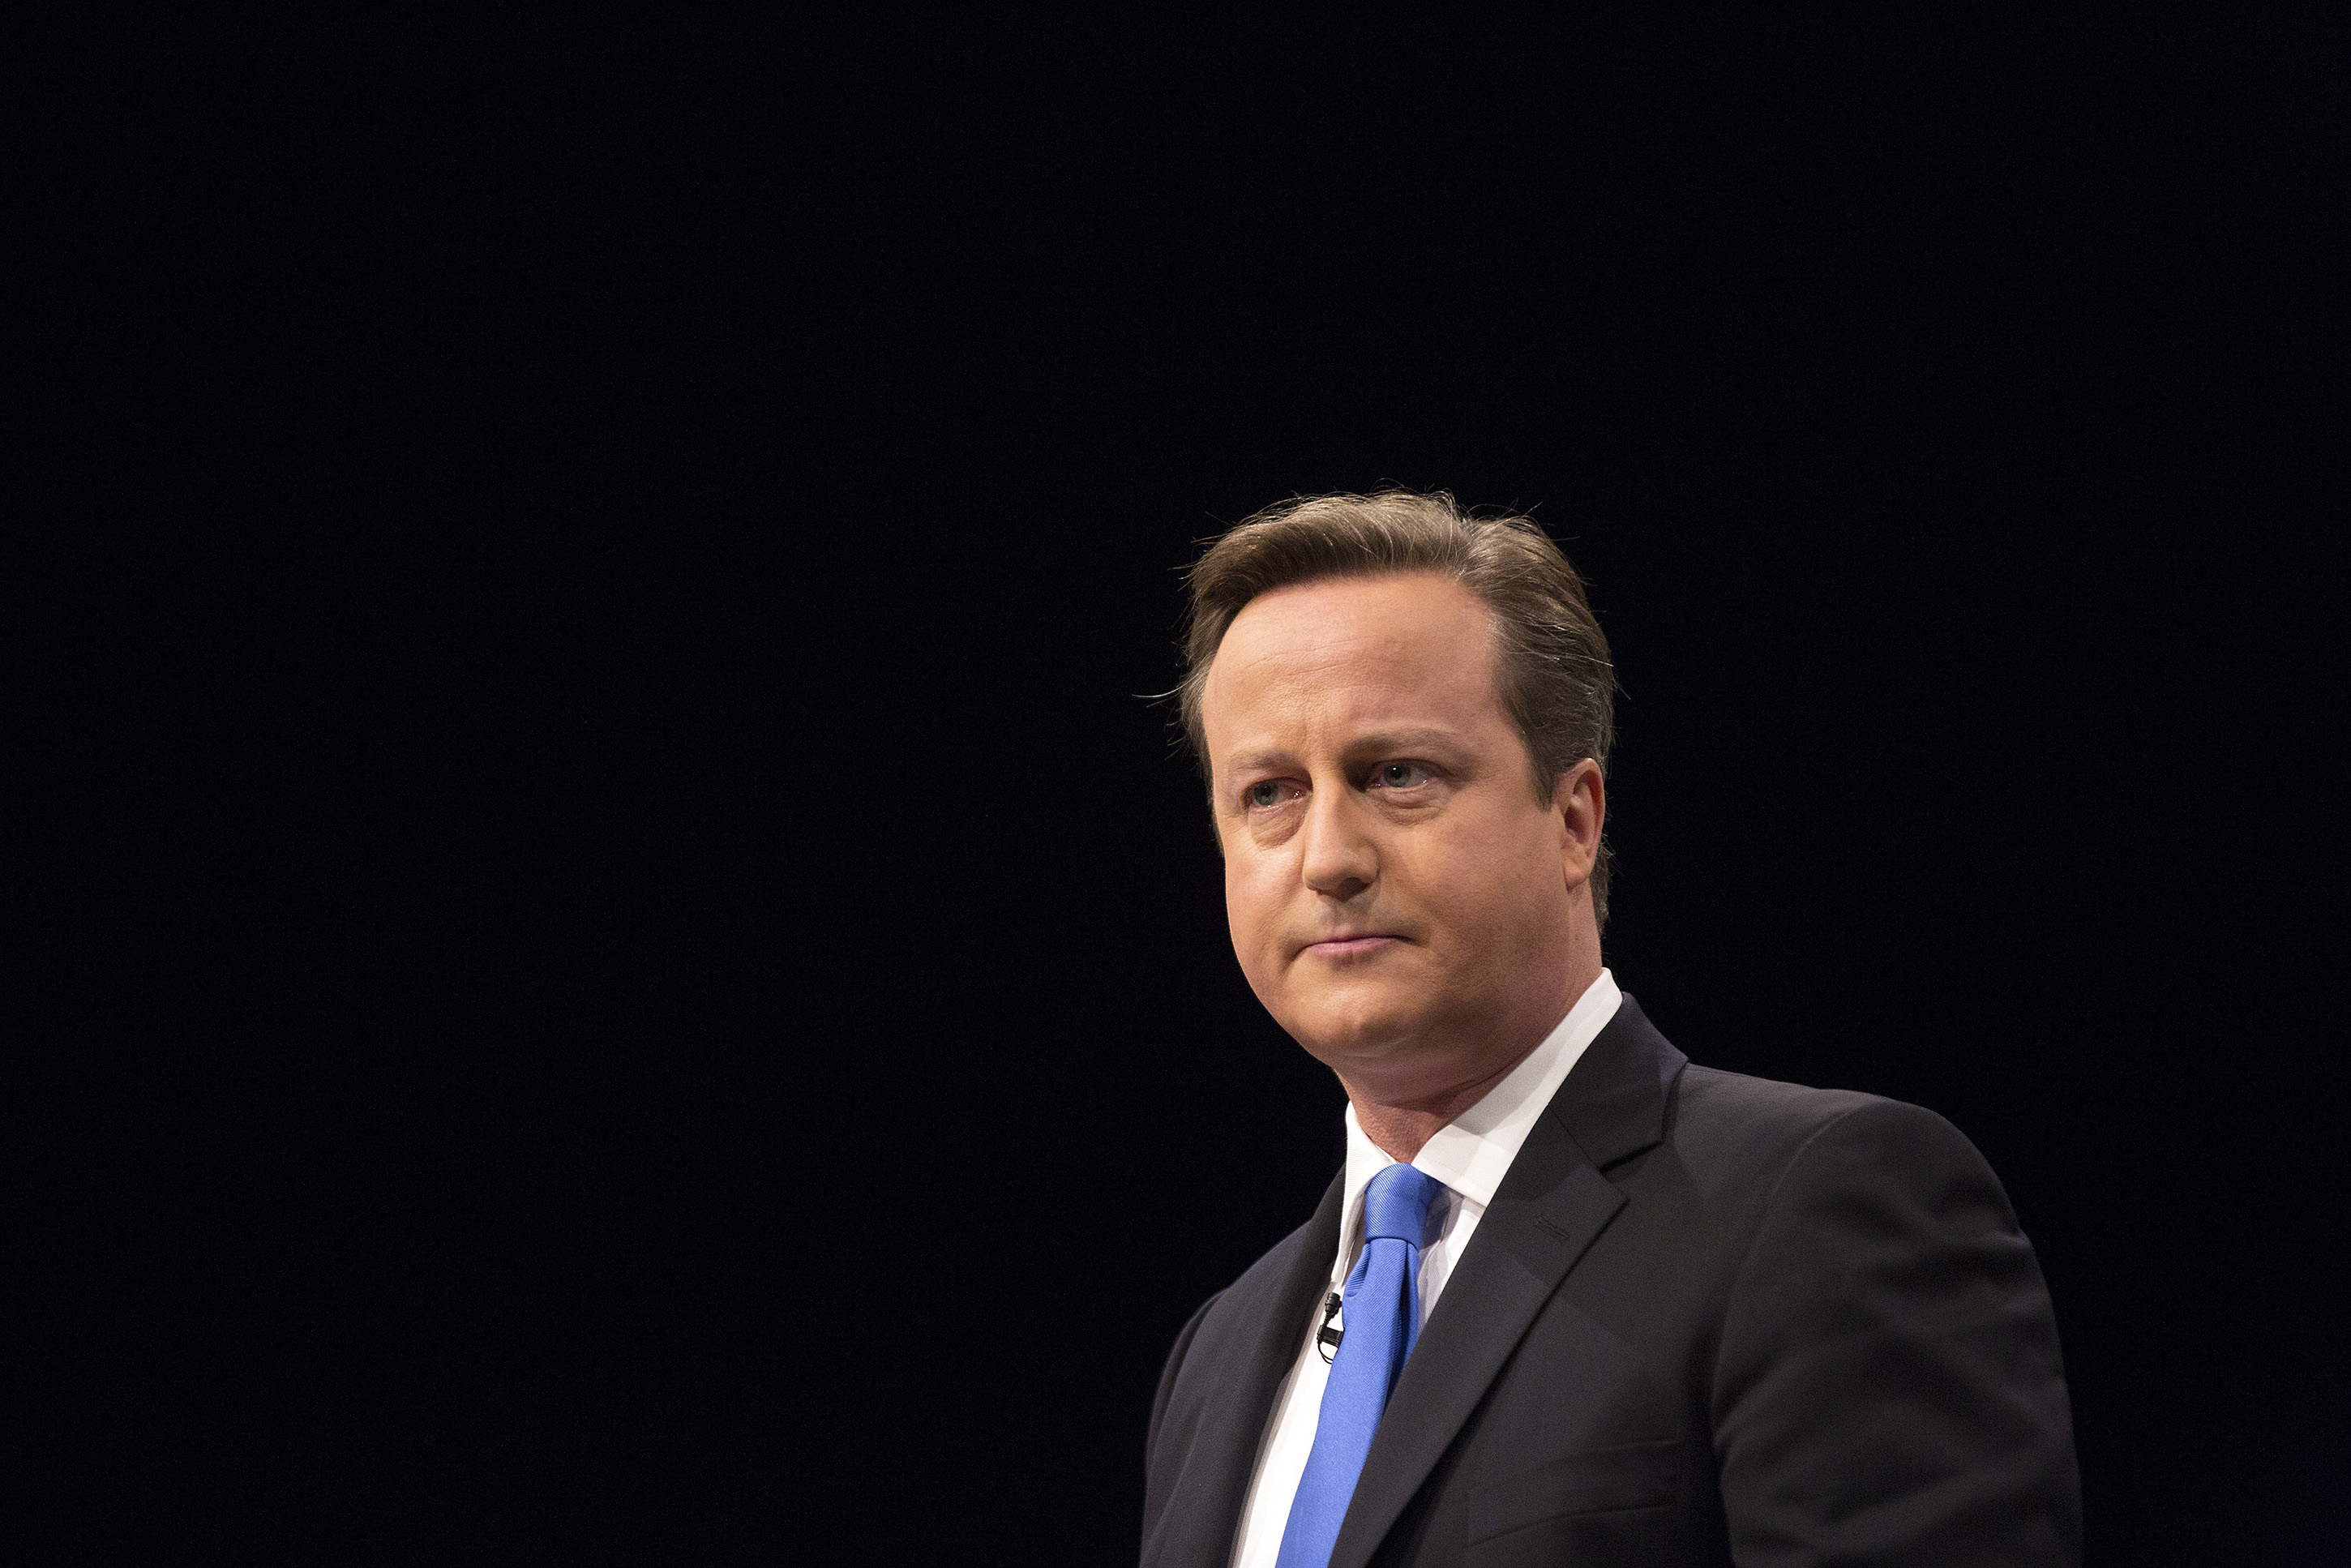 U.K. Prime Minister David Cameron At Conservative Party Conference